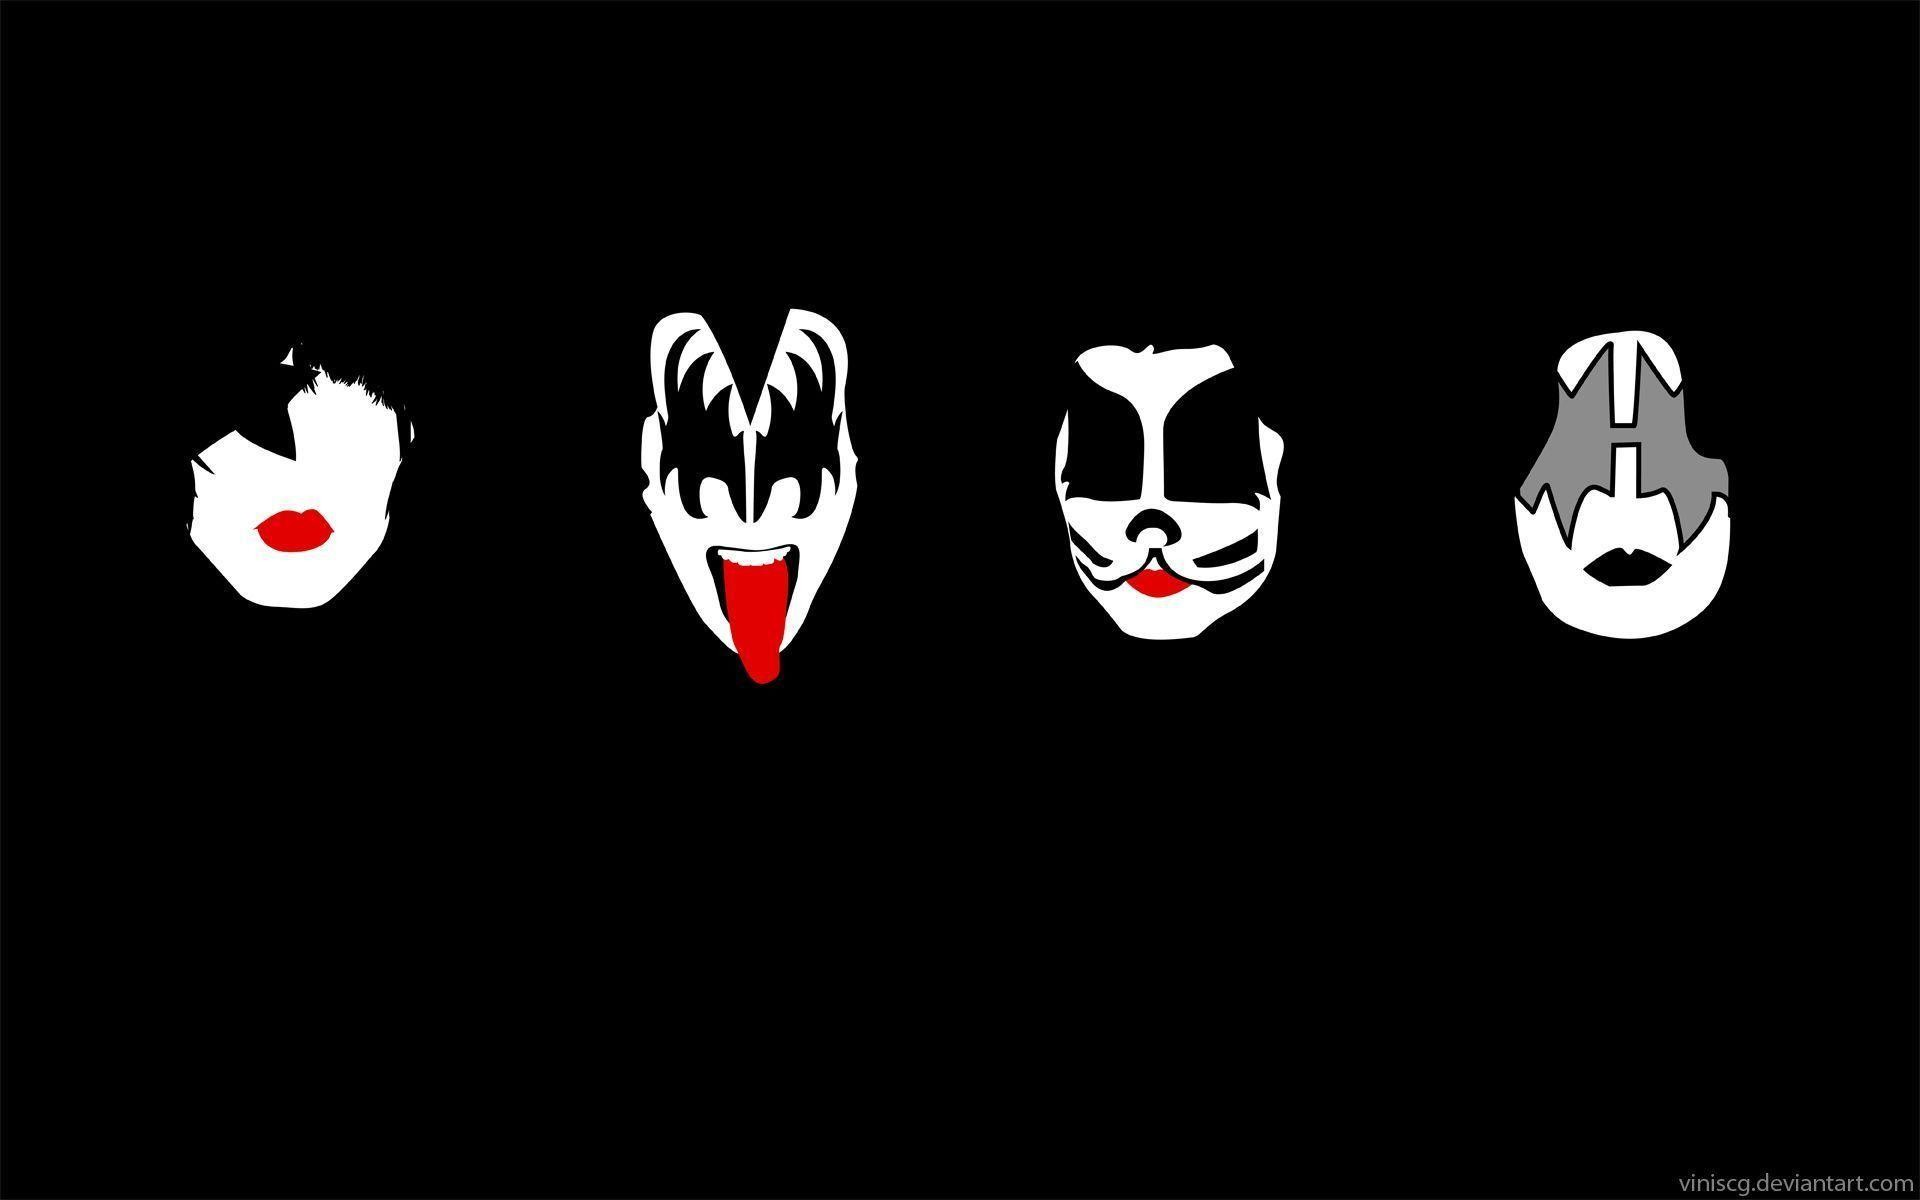 rock band kiss wallpapers (48+ images)